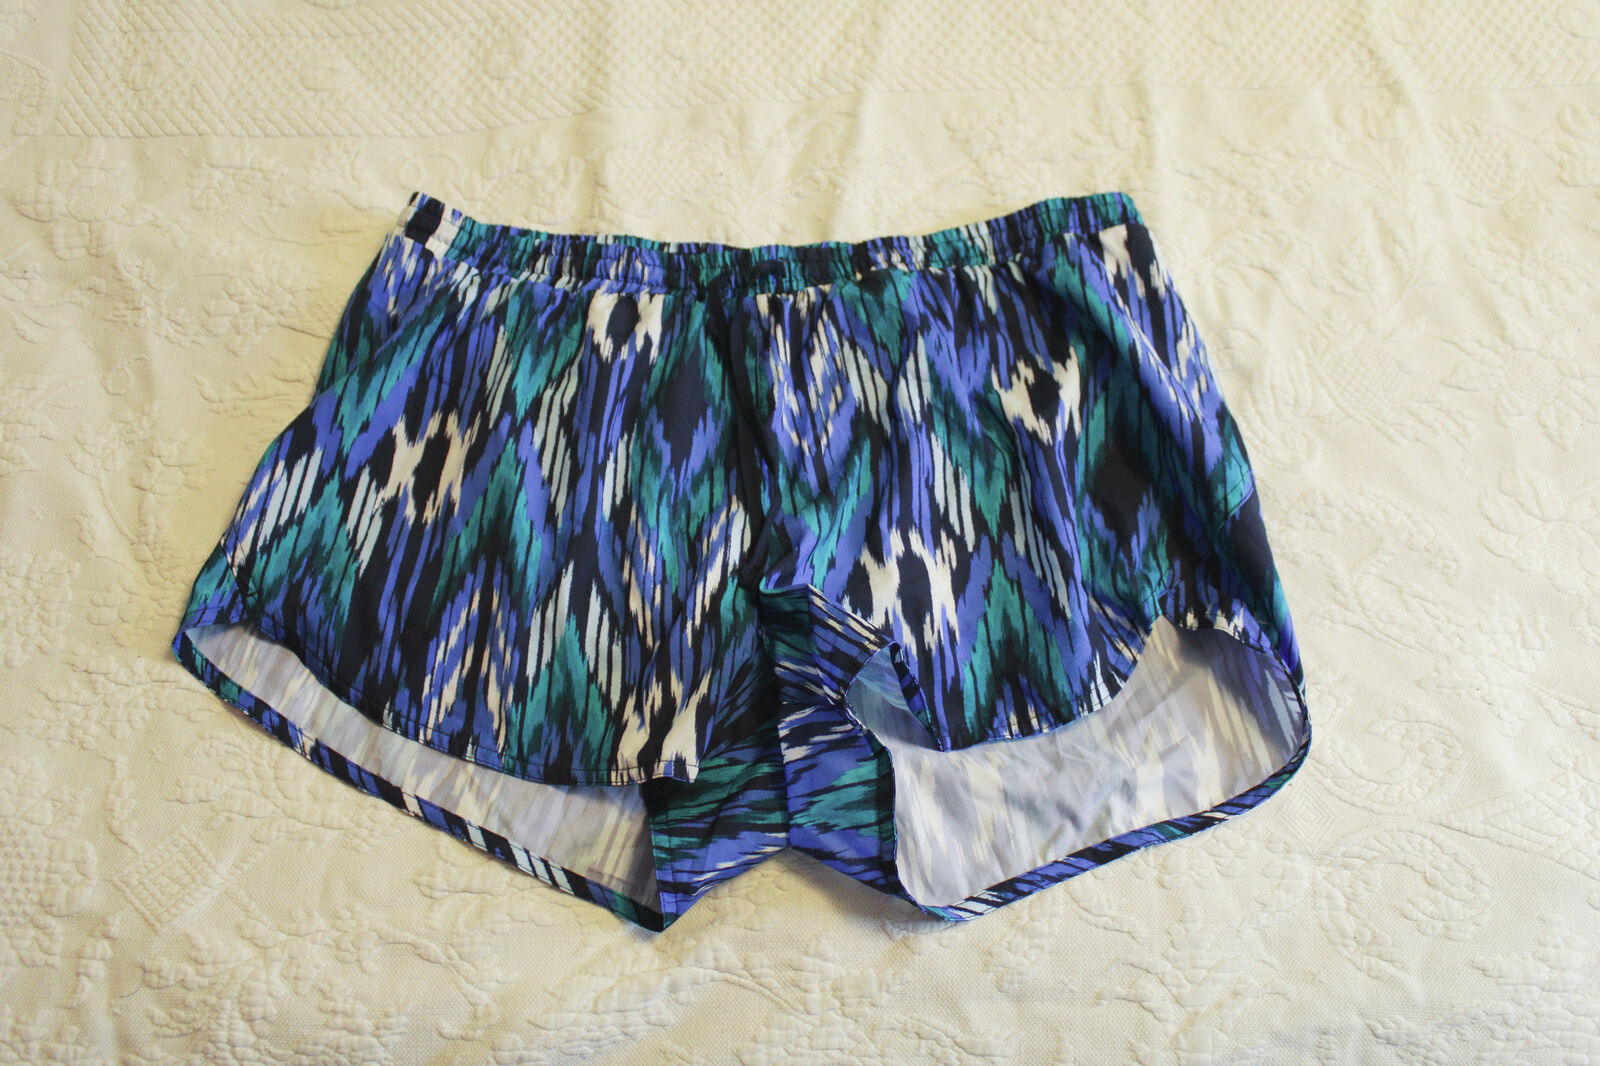 Old Navy Active Women's Go-Dry Inner-Lined Printed Shorts RH7 Multi Large NWT